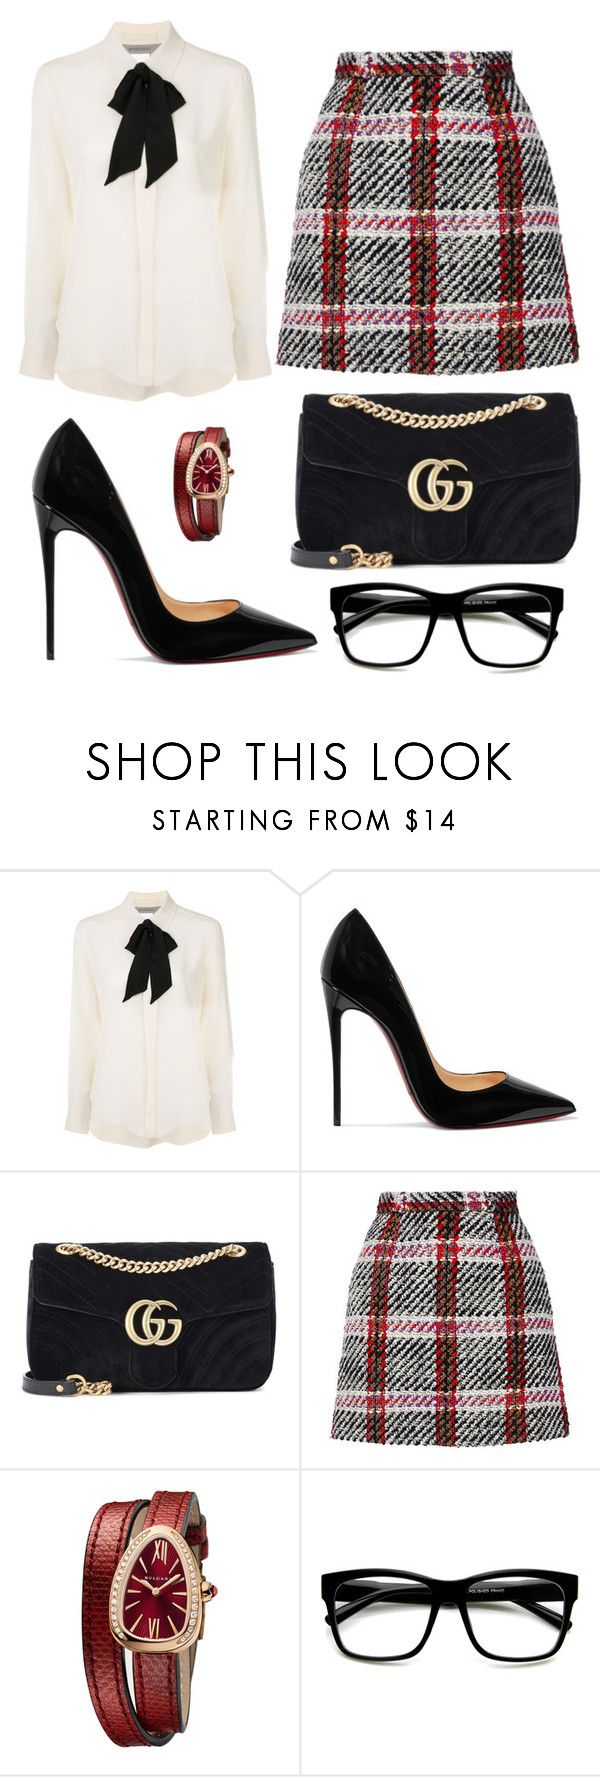 """""""Untitled #219"""" by pattydd ❤ liked on Polyvore featuring Sportmax, Christian Louboutin, Gucci, Carven, Bulgari and ZeroUV"""